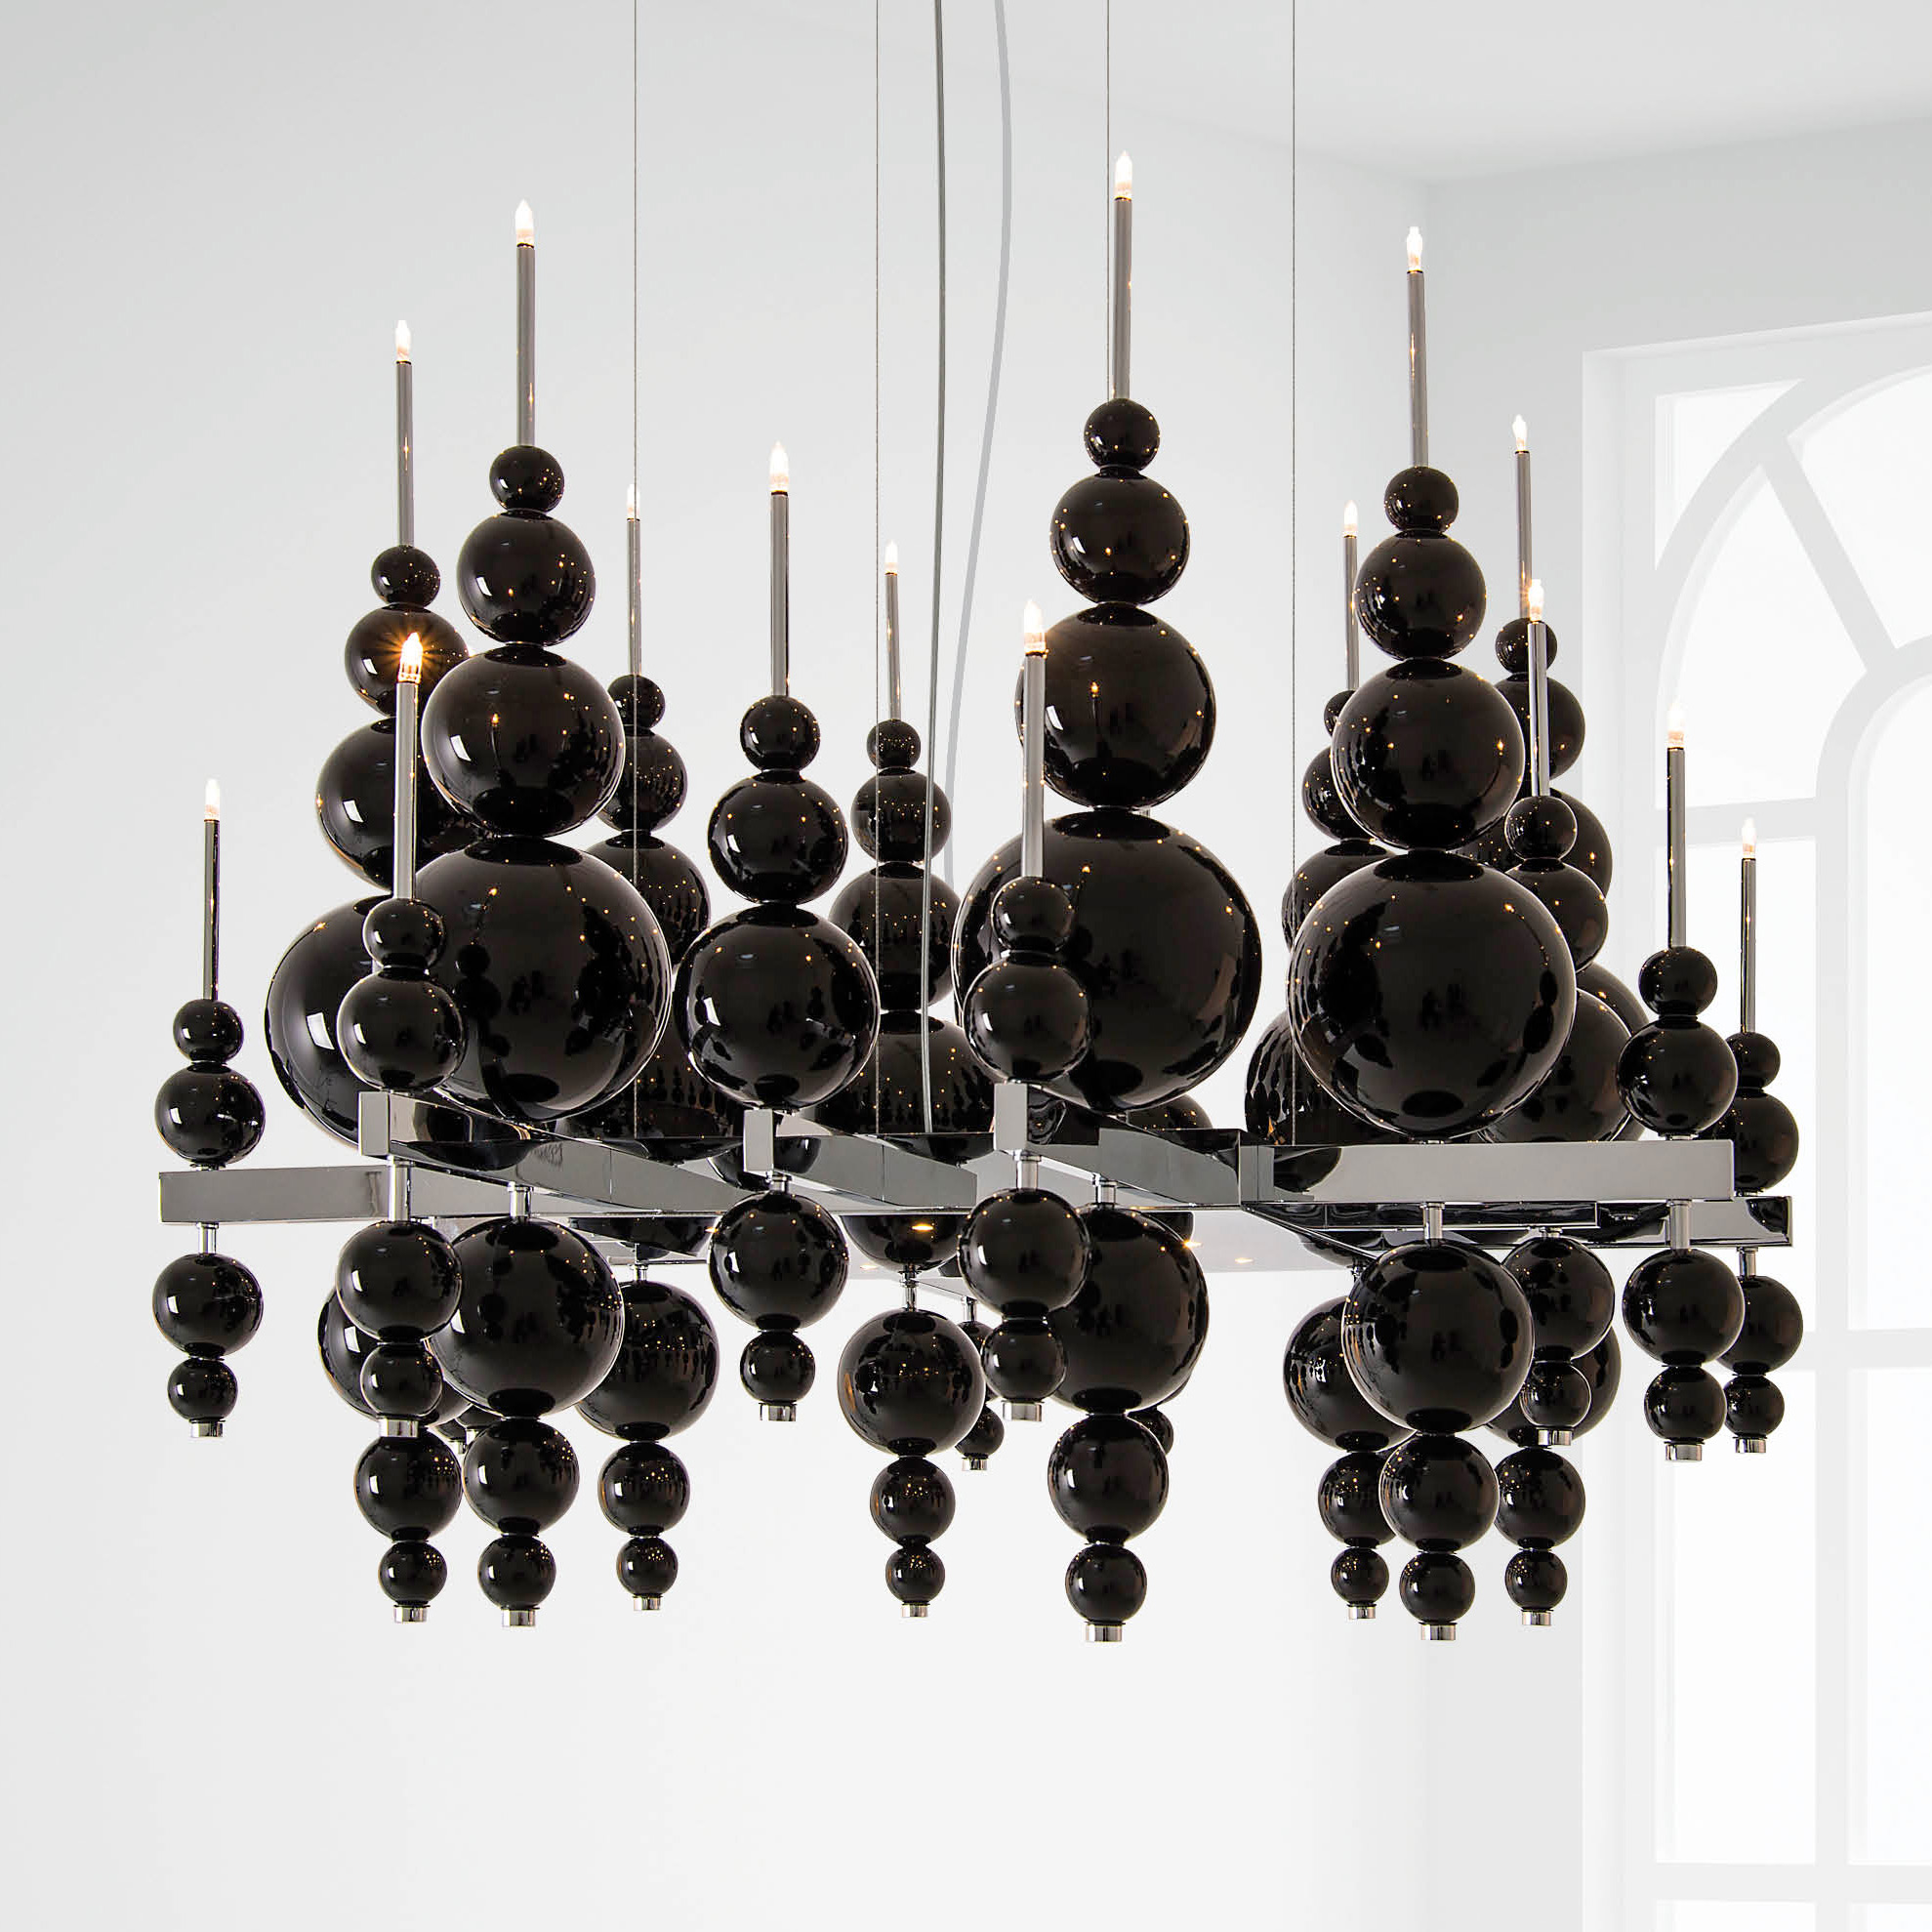 From moon square chandelier by ilfari ilf6419b02 tears from moon square chandelier by ilfari ilf6419b02 arubaitofo Choice Image